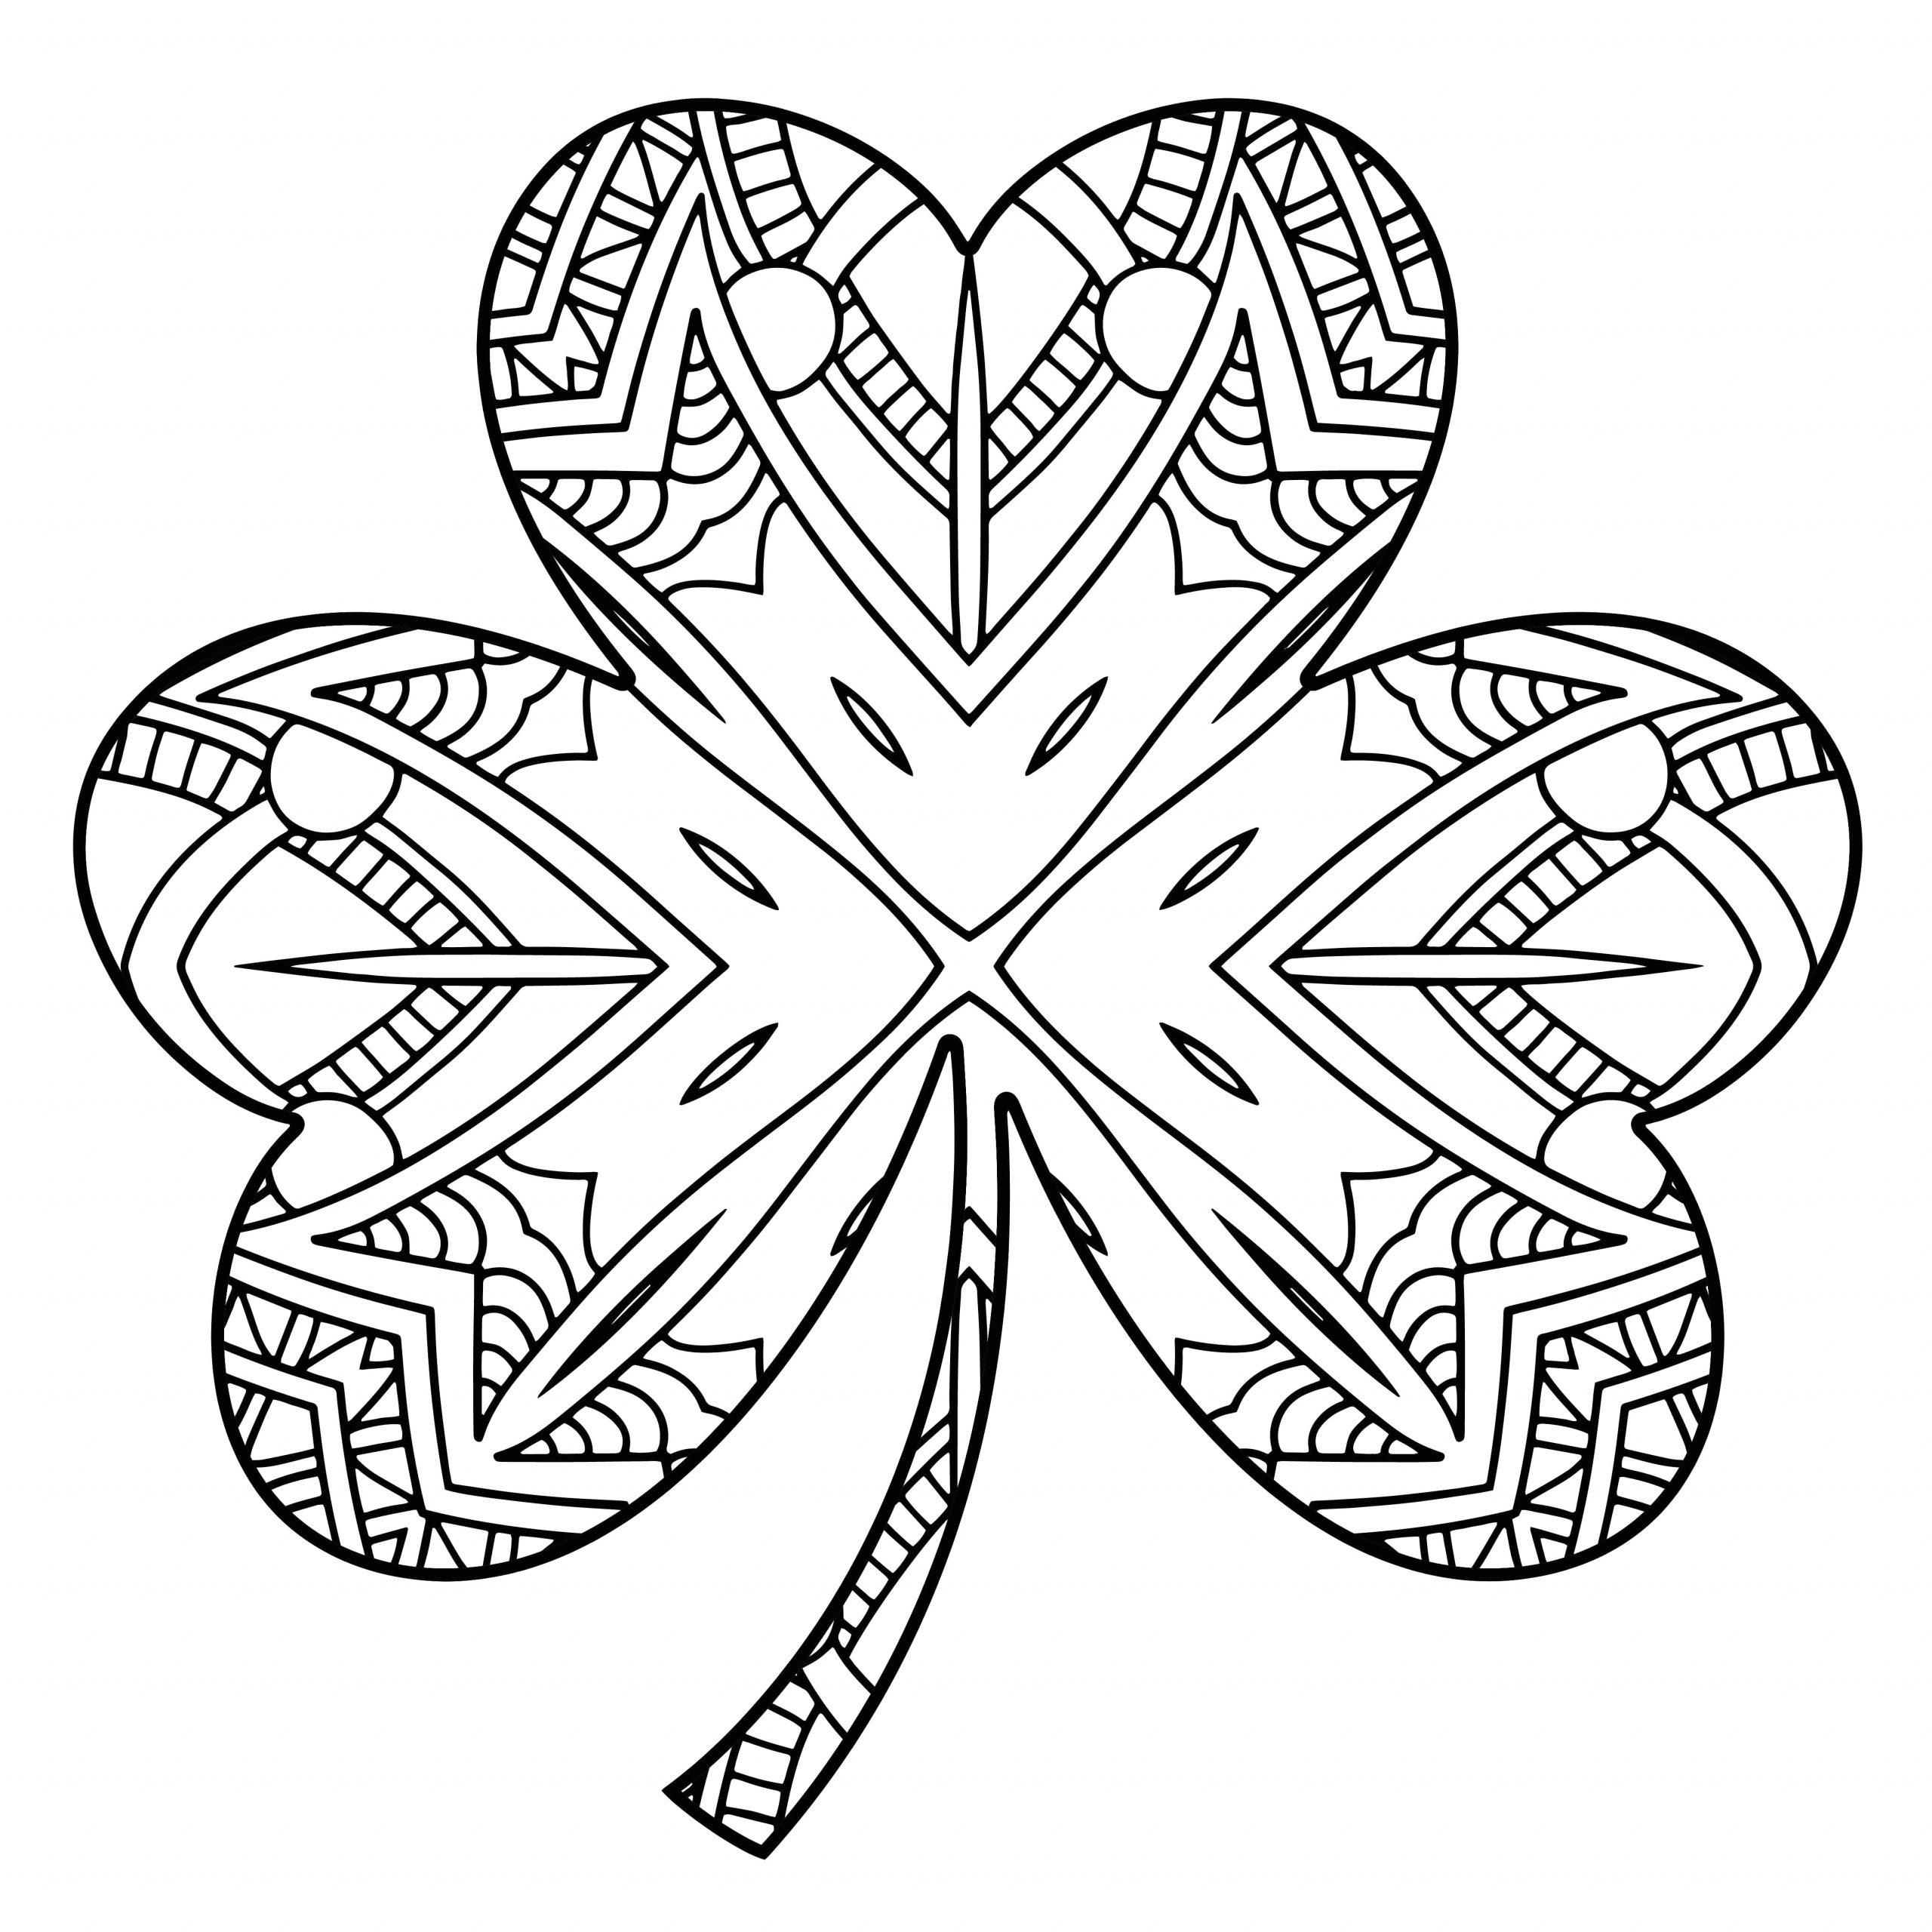 St Patricks Day Coloring Pages for Adults Coloring Pages St Patricks Coloring Sheets St Patrick